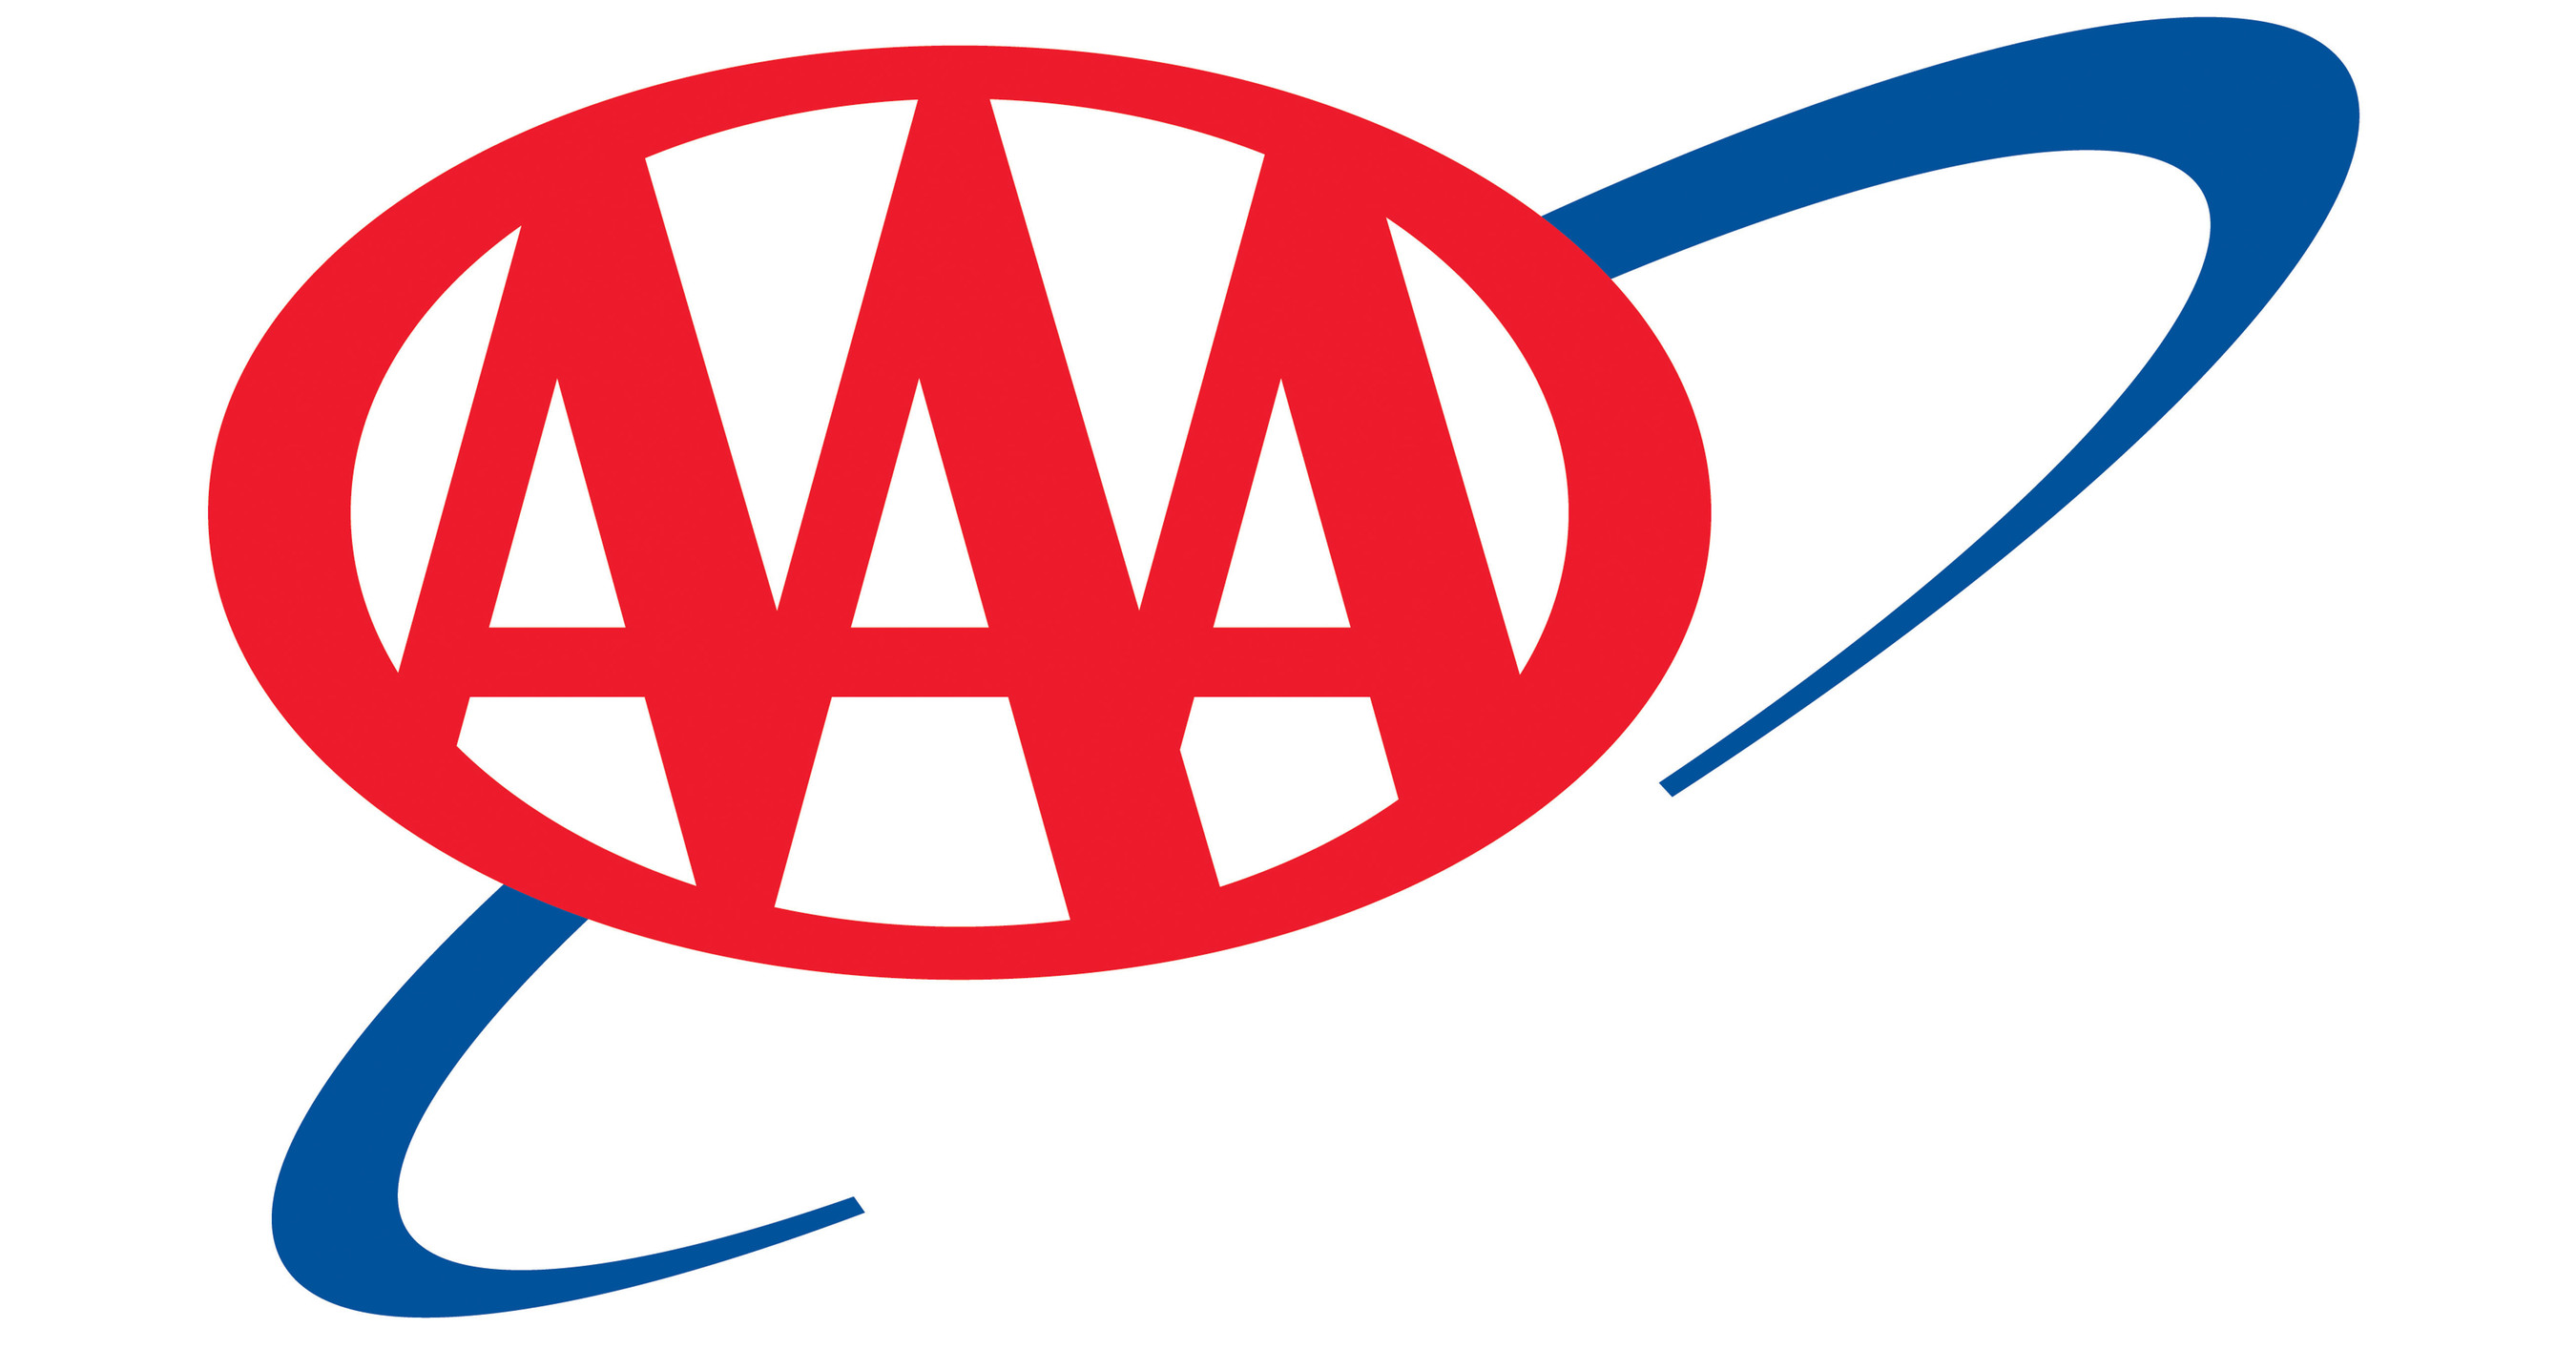 AAA Insurance Named Multi-line Insurance Brand of the Year